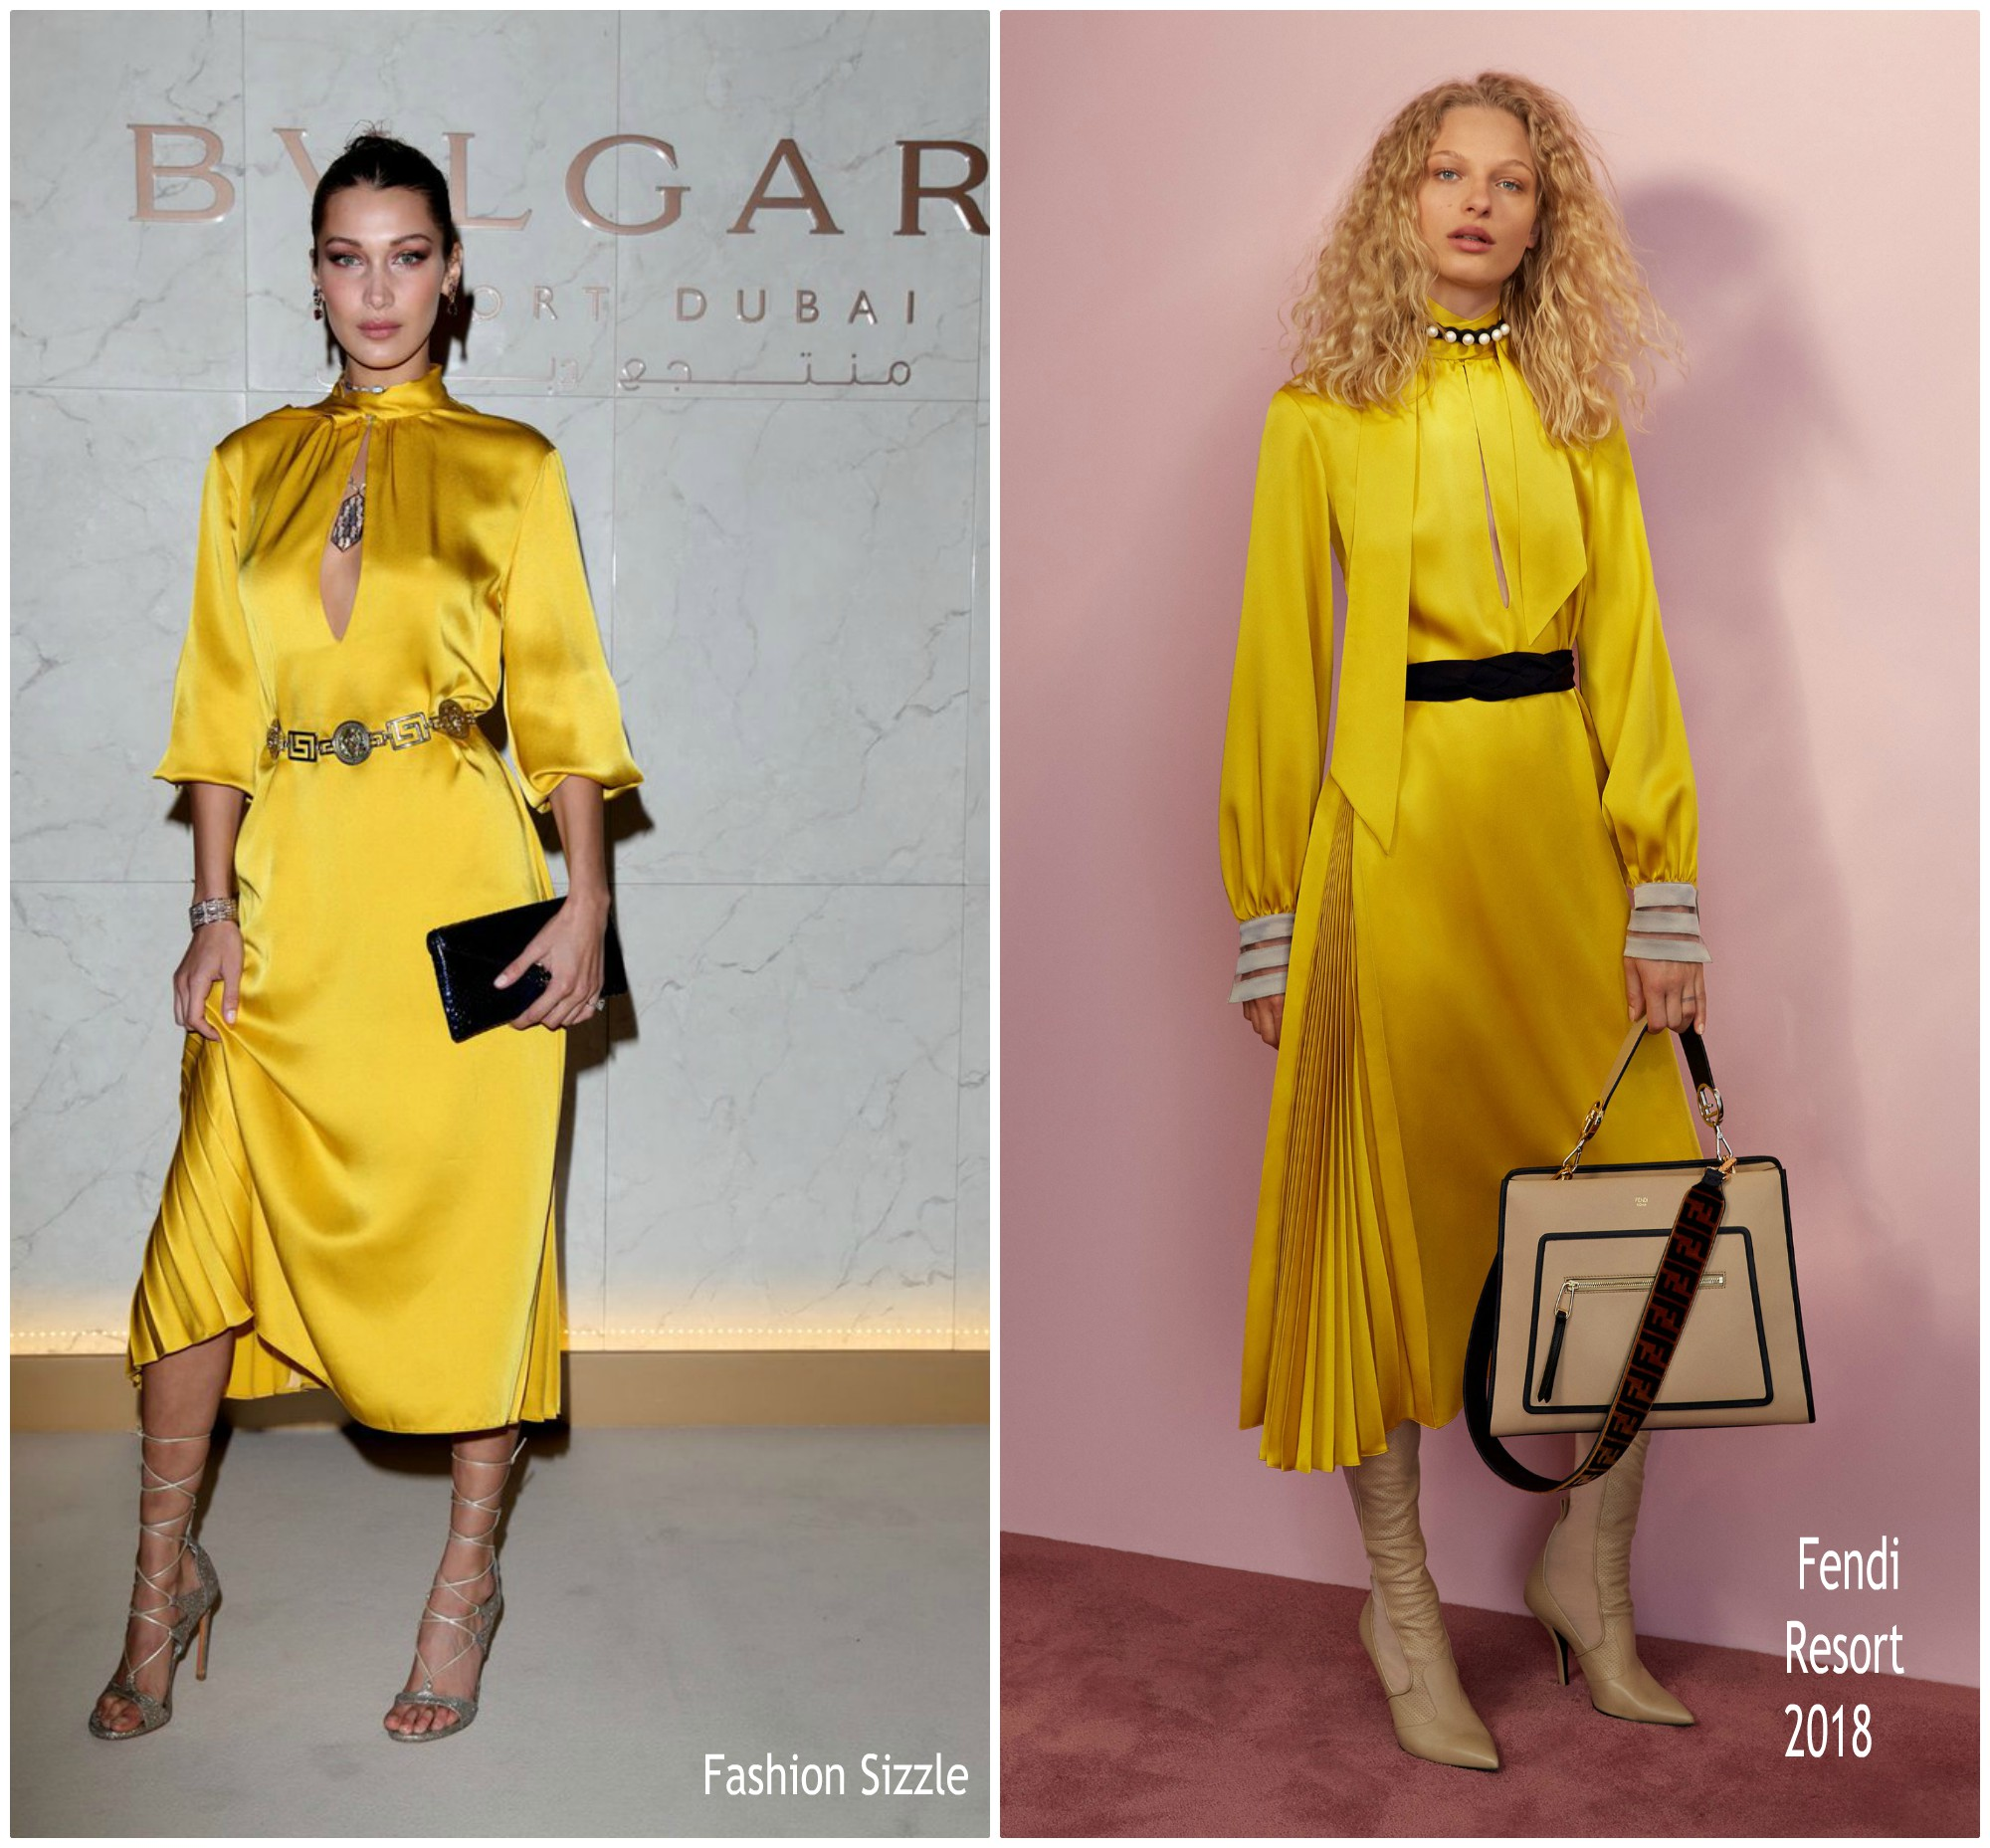 bella-hadid-in-fendi-bulgari-resort-dubai-opening